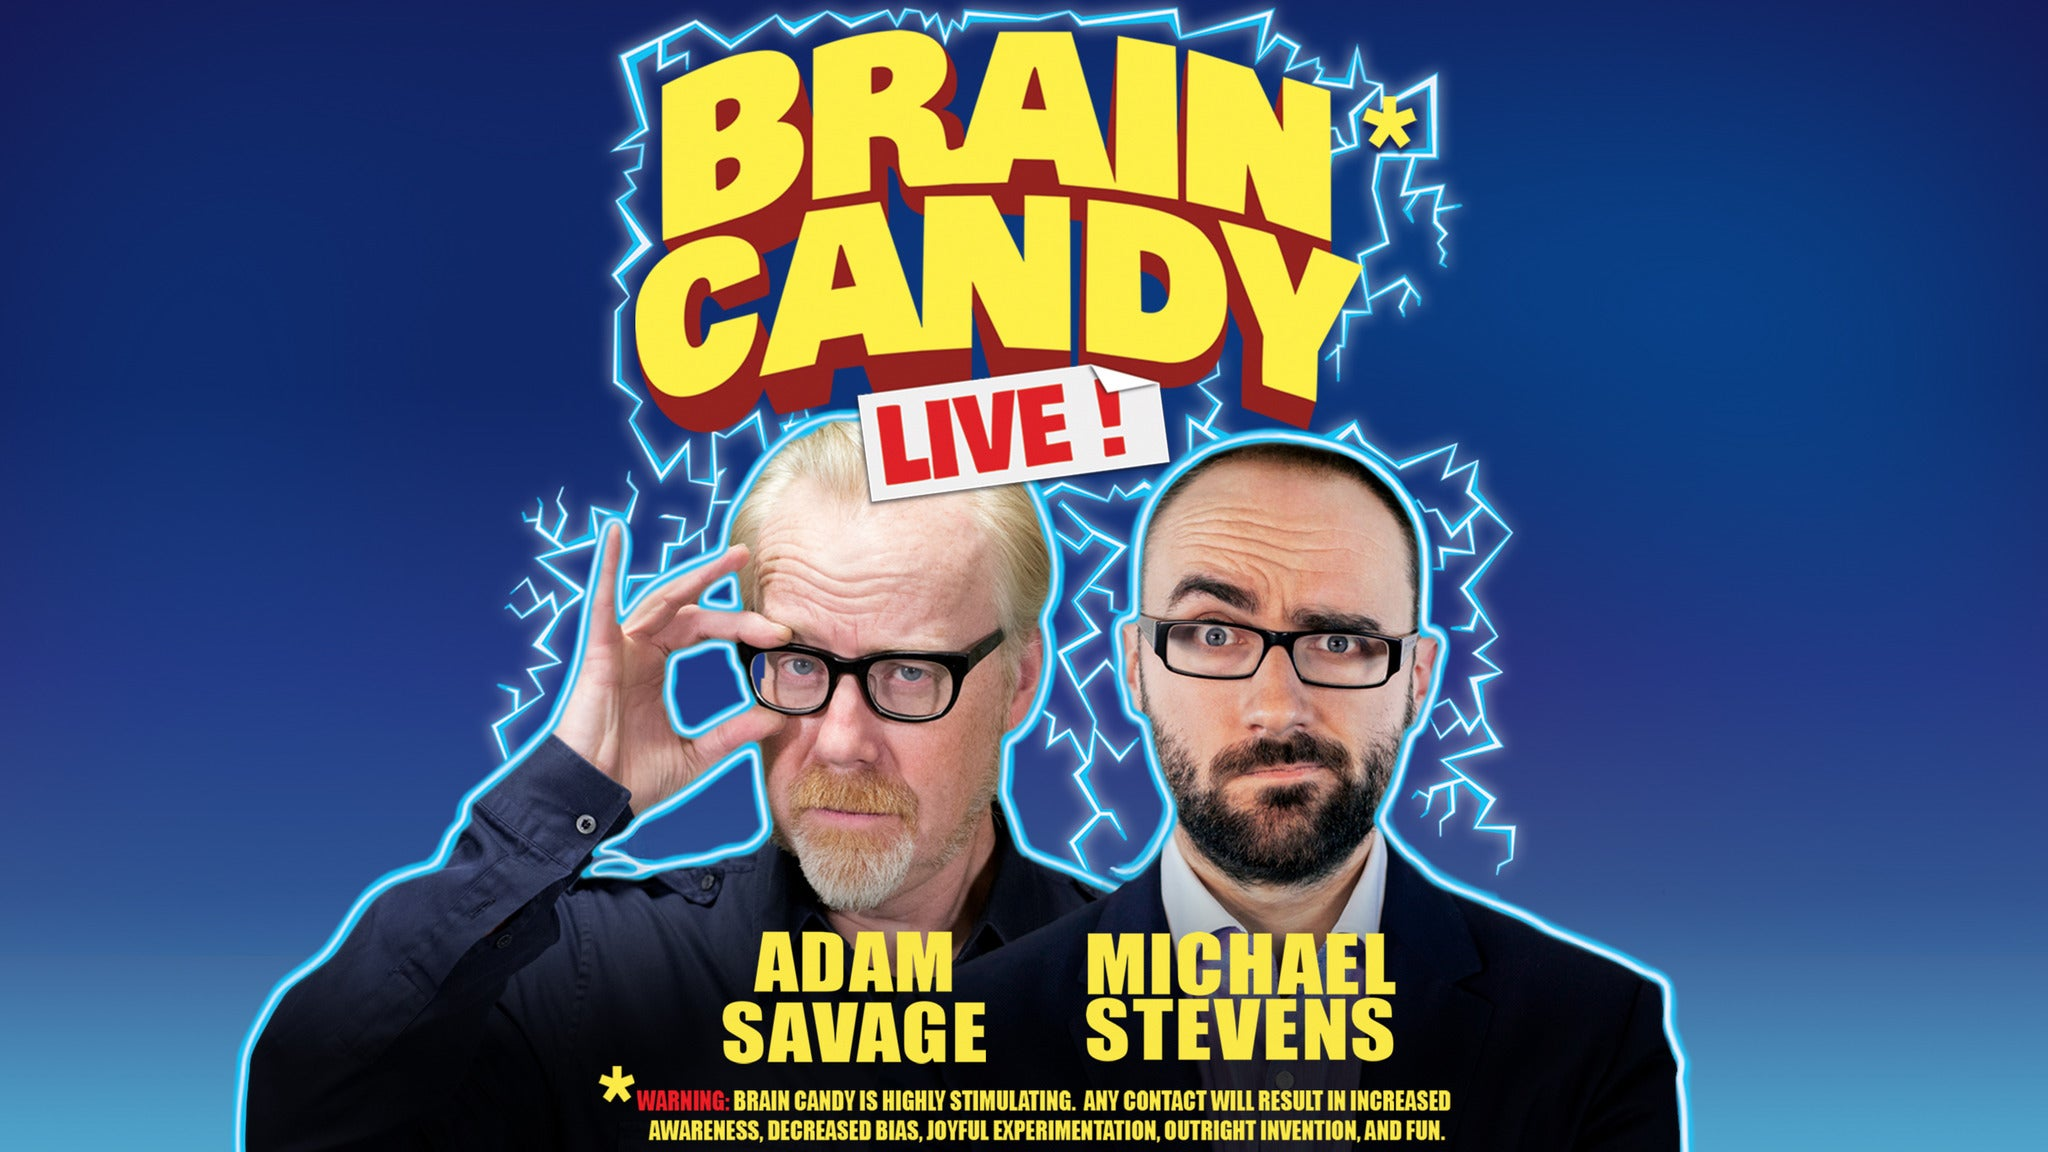 Brain Candy Live at Fox Performing Arts Center - RIVERSIDE, CA 92501